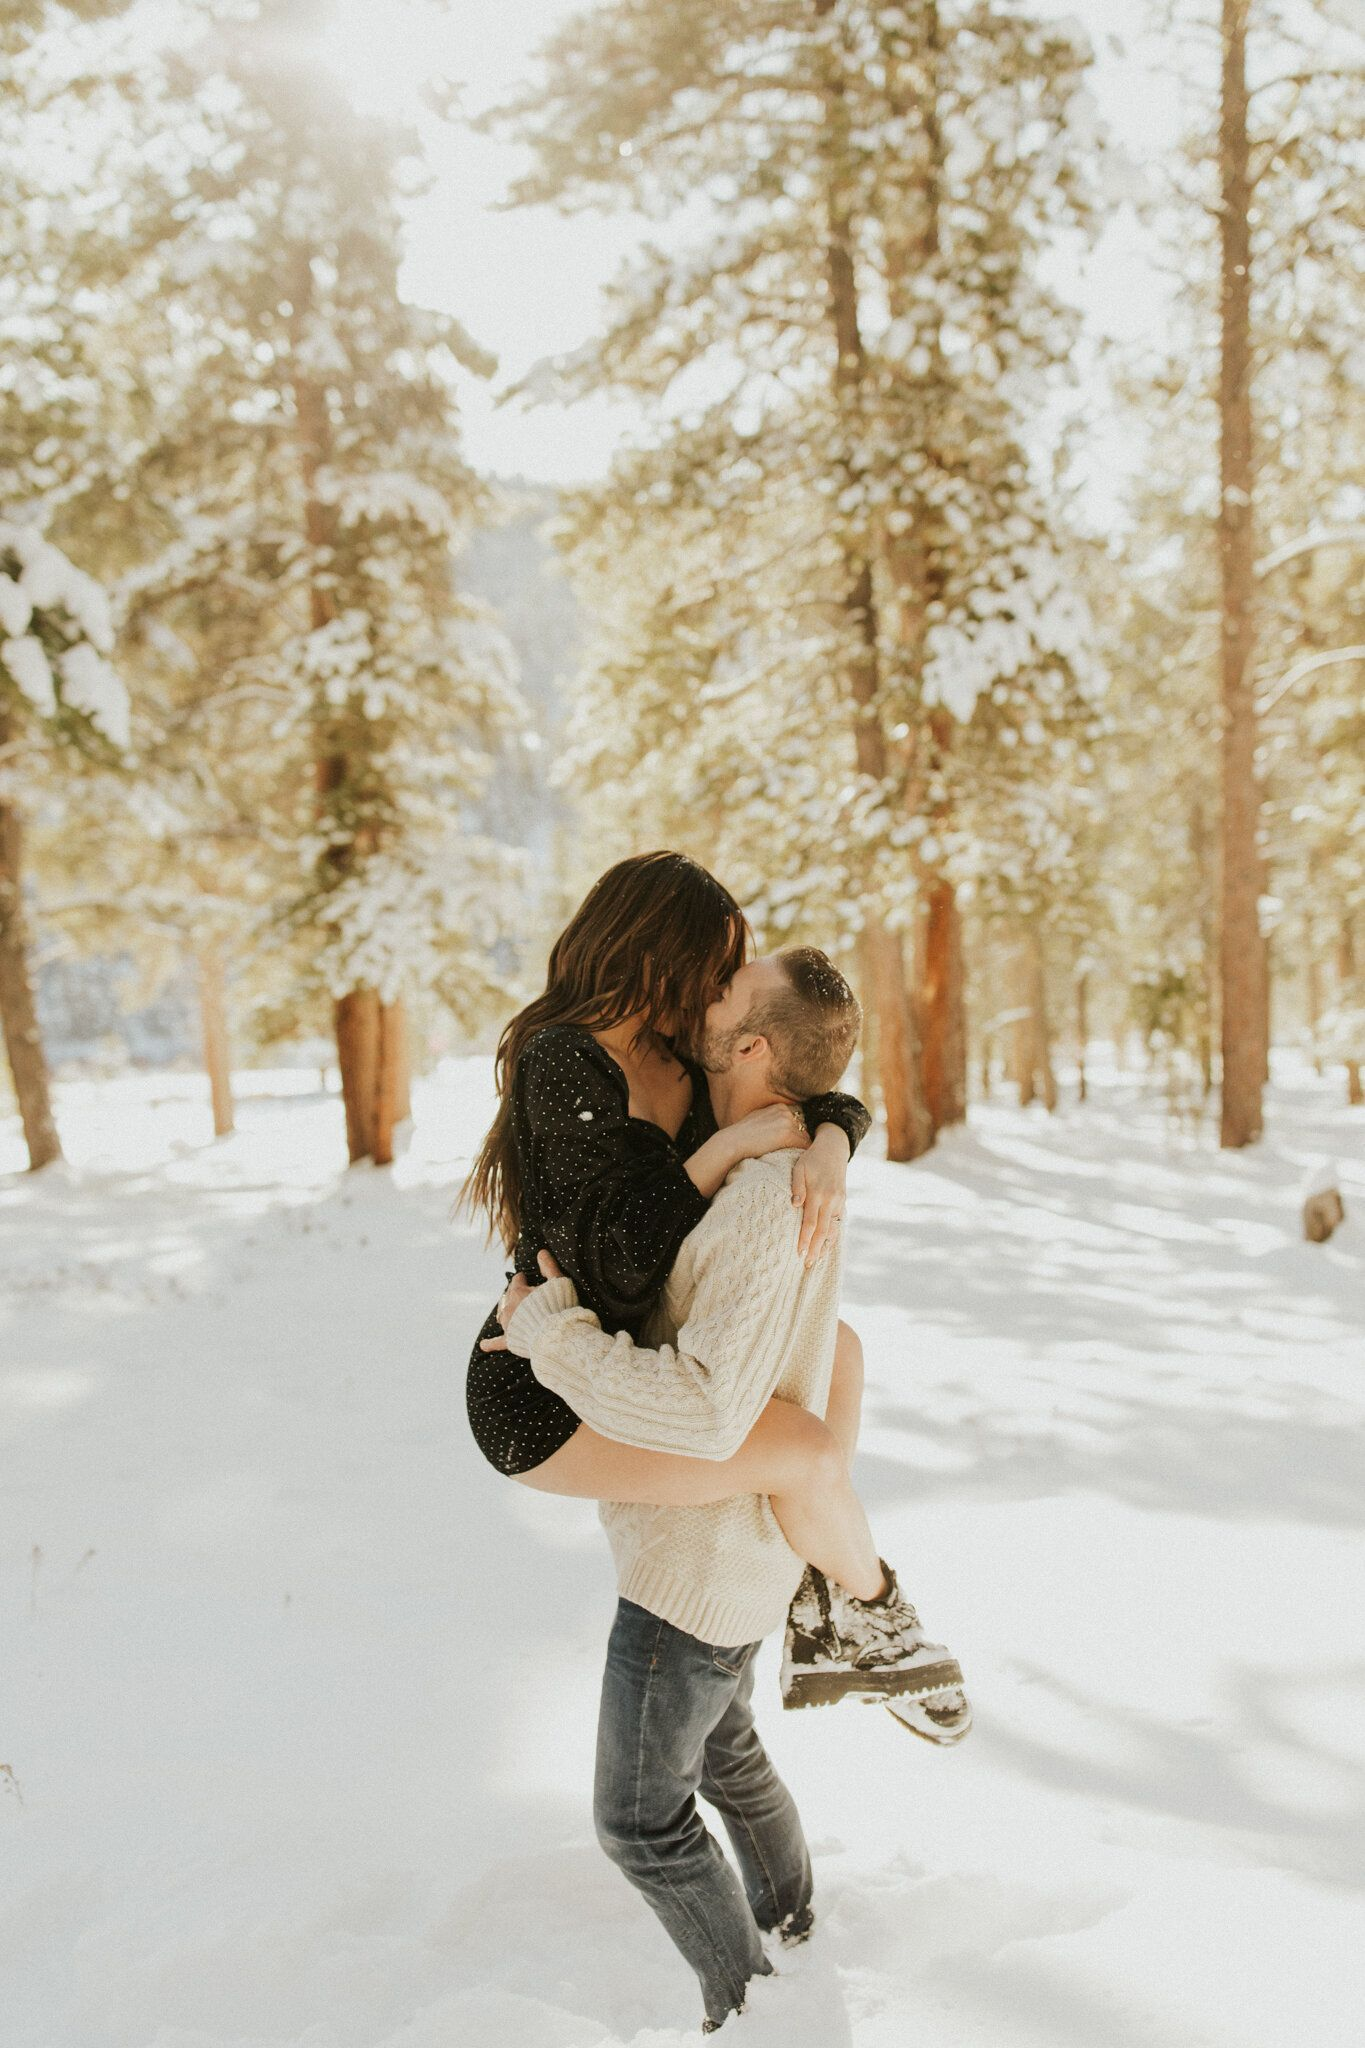 Calder Photography - Utah Mountain Winter Engagement Photos I Katy + Spencer - .... -  Calder Photography – Utah Mountain Winter Engagement Photos I Katy + Spencer – … –  Calder  - #Calder #Engagement #EngagementPhotosafricanamerican #EngagementPhotosbeach #EngagementPhotoscountry #EngagementPhotosfall #EngagementPhotosideas #EngagementPhotosoutfits #EngagementPhotosposes #EngagementPhotosspring #EngagementPhotoswinter #EngagementPhotoswithdog #Katy #Mountain #Photography #Photos #Spencer #summ